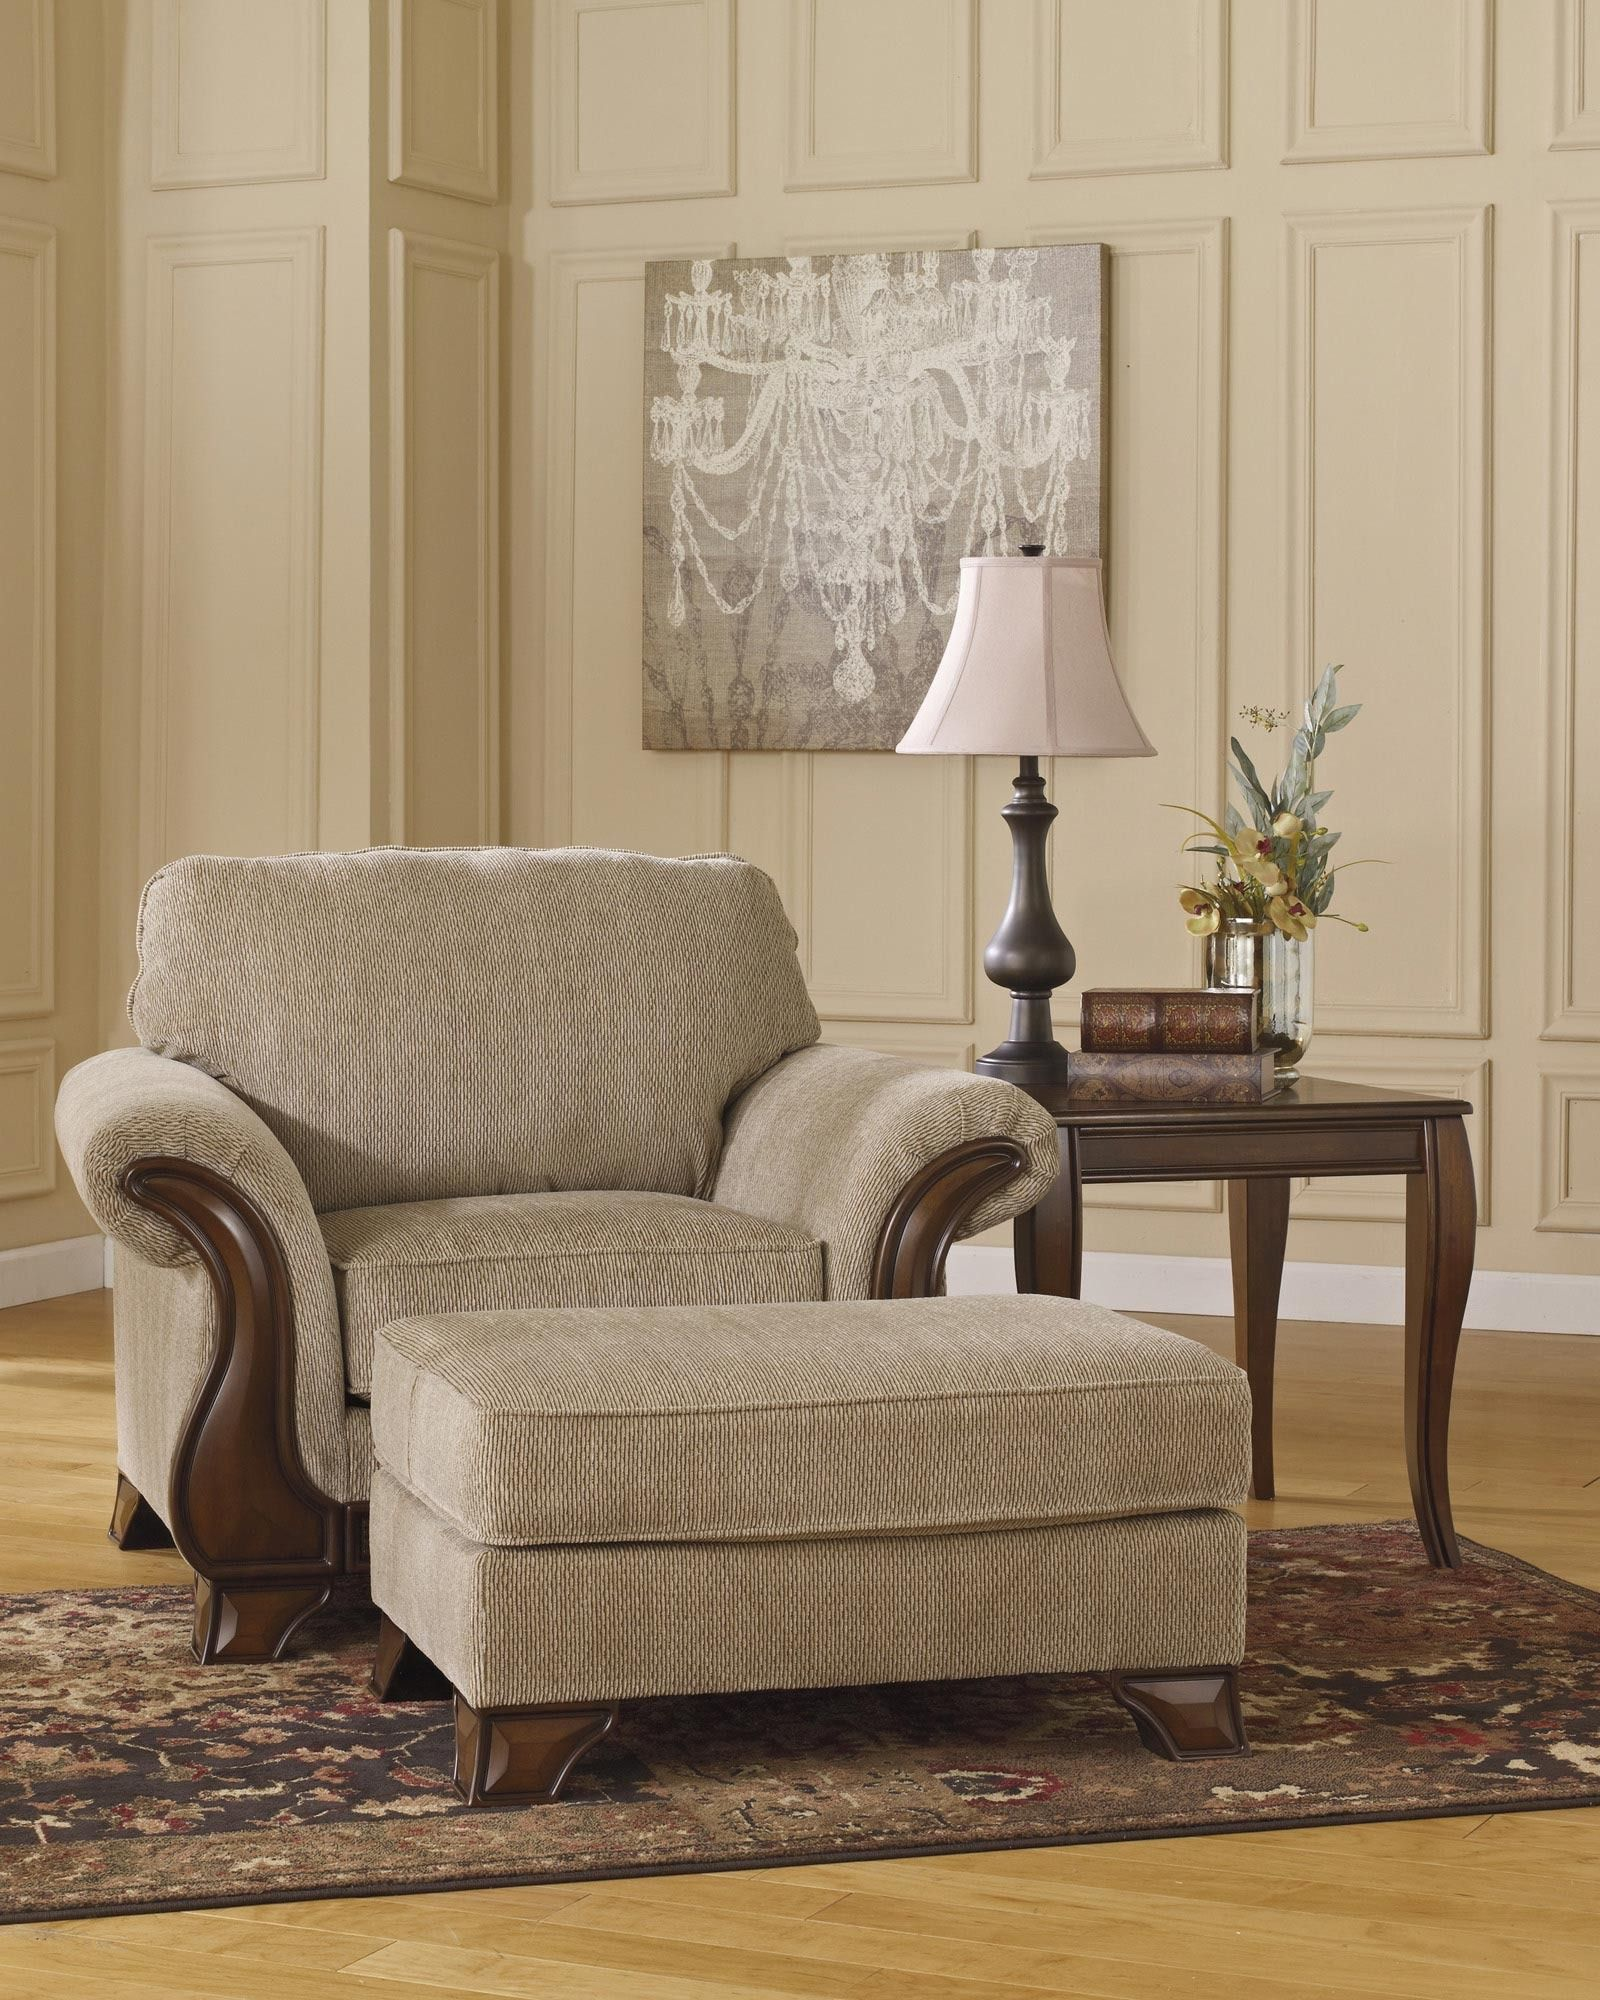 Chair Ashley Home Gallery Stores Fabric